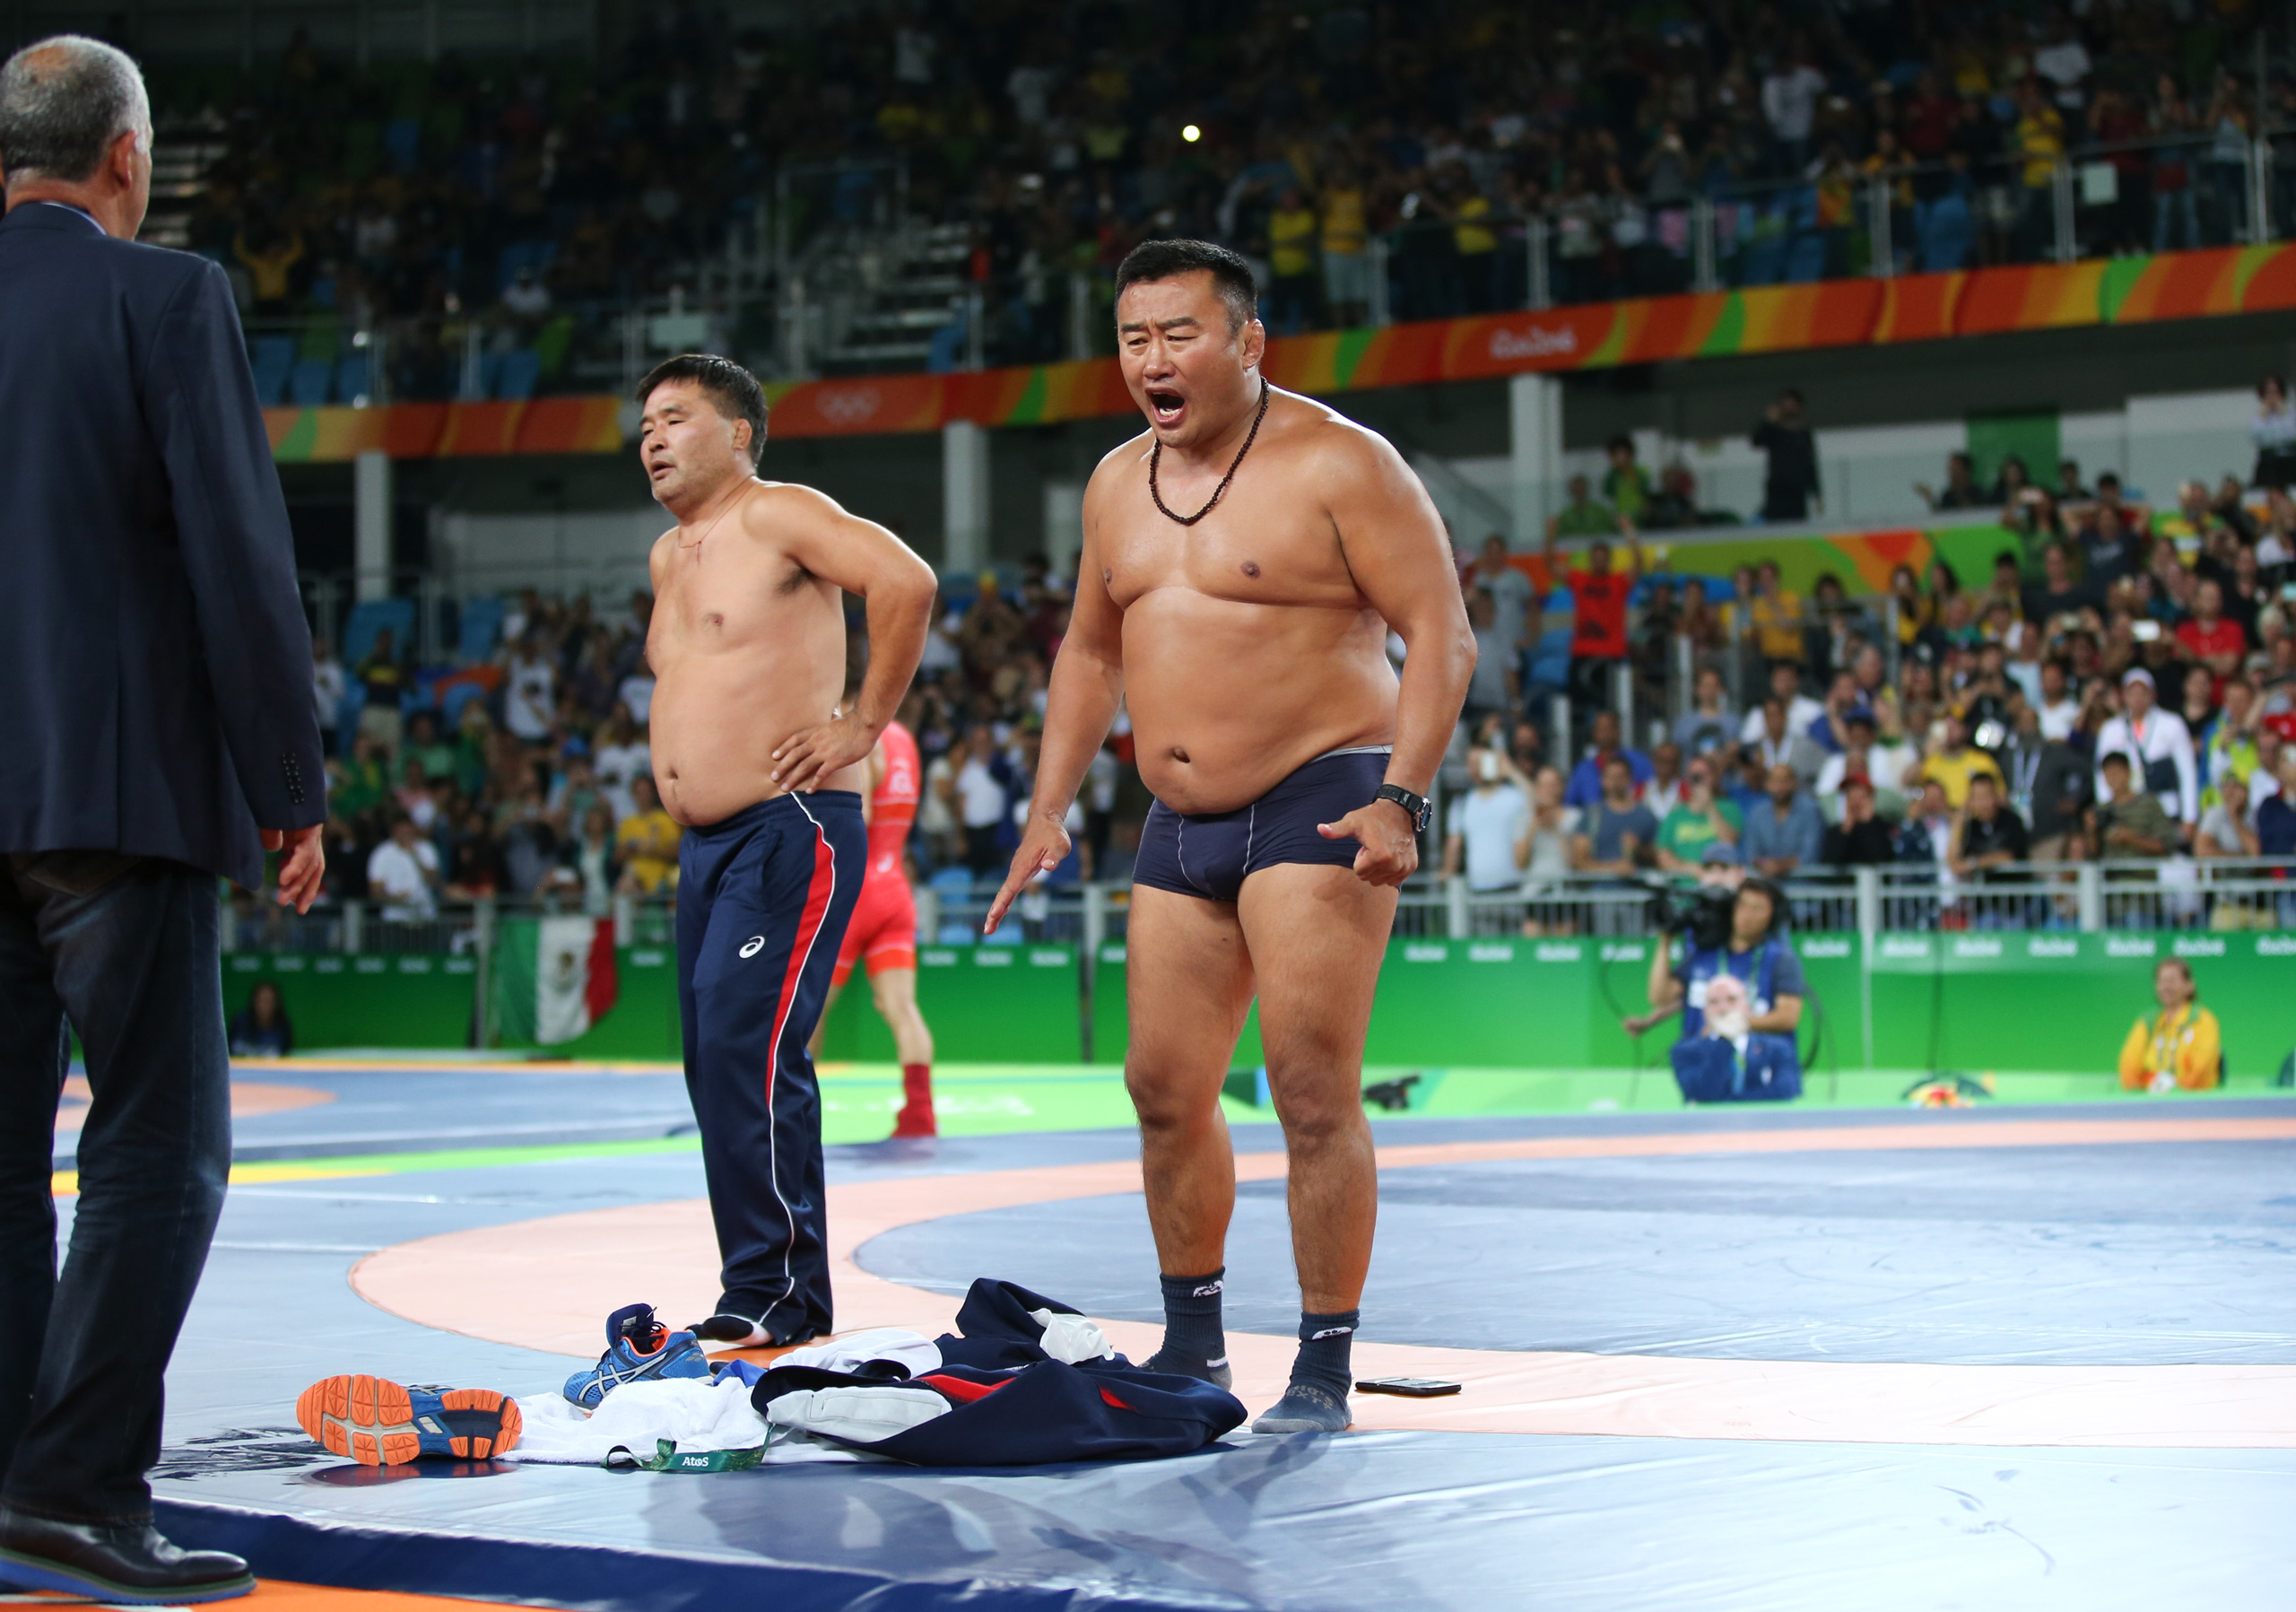 The coach of Mandakhnaran Ganzorig of Mongolia takes off his clothes as he protests after the Men's Freestyle 65 kg Bronze final against Ikhtiyor Navruzov of Uzbekistan at the 2016 Rio Olympics on Aug. 21, 2016.